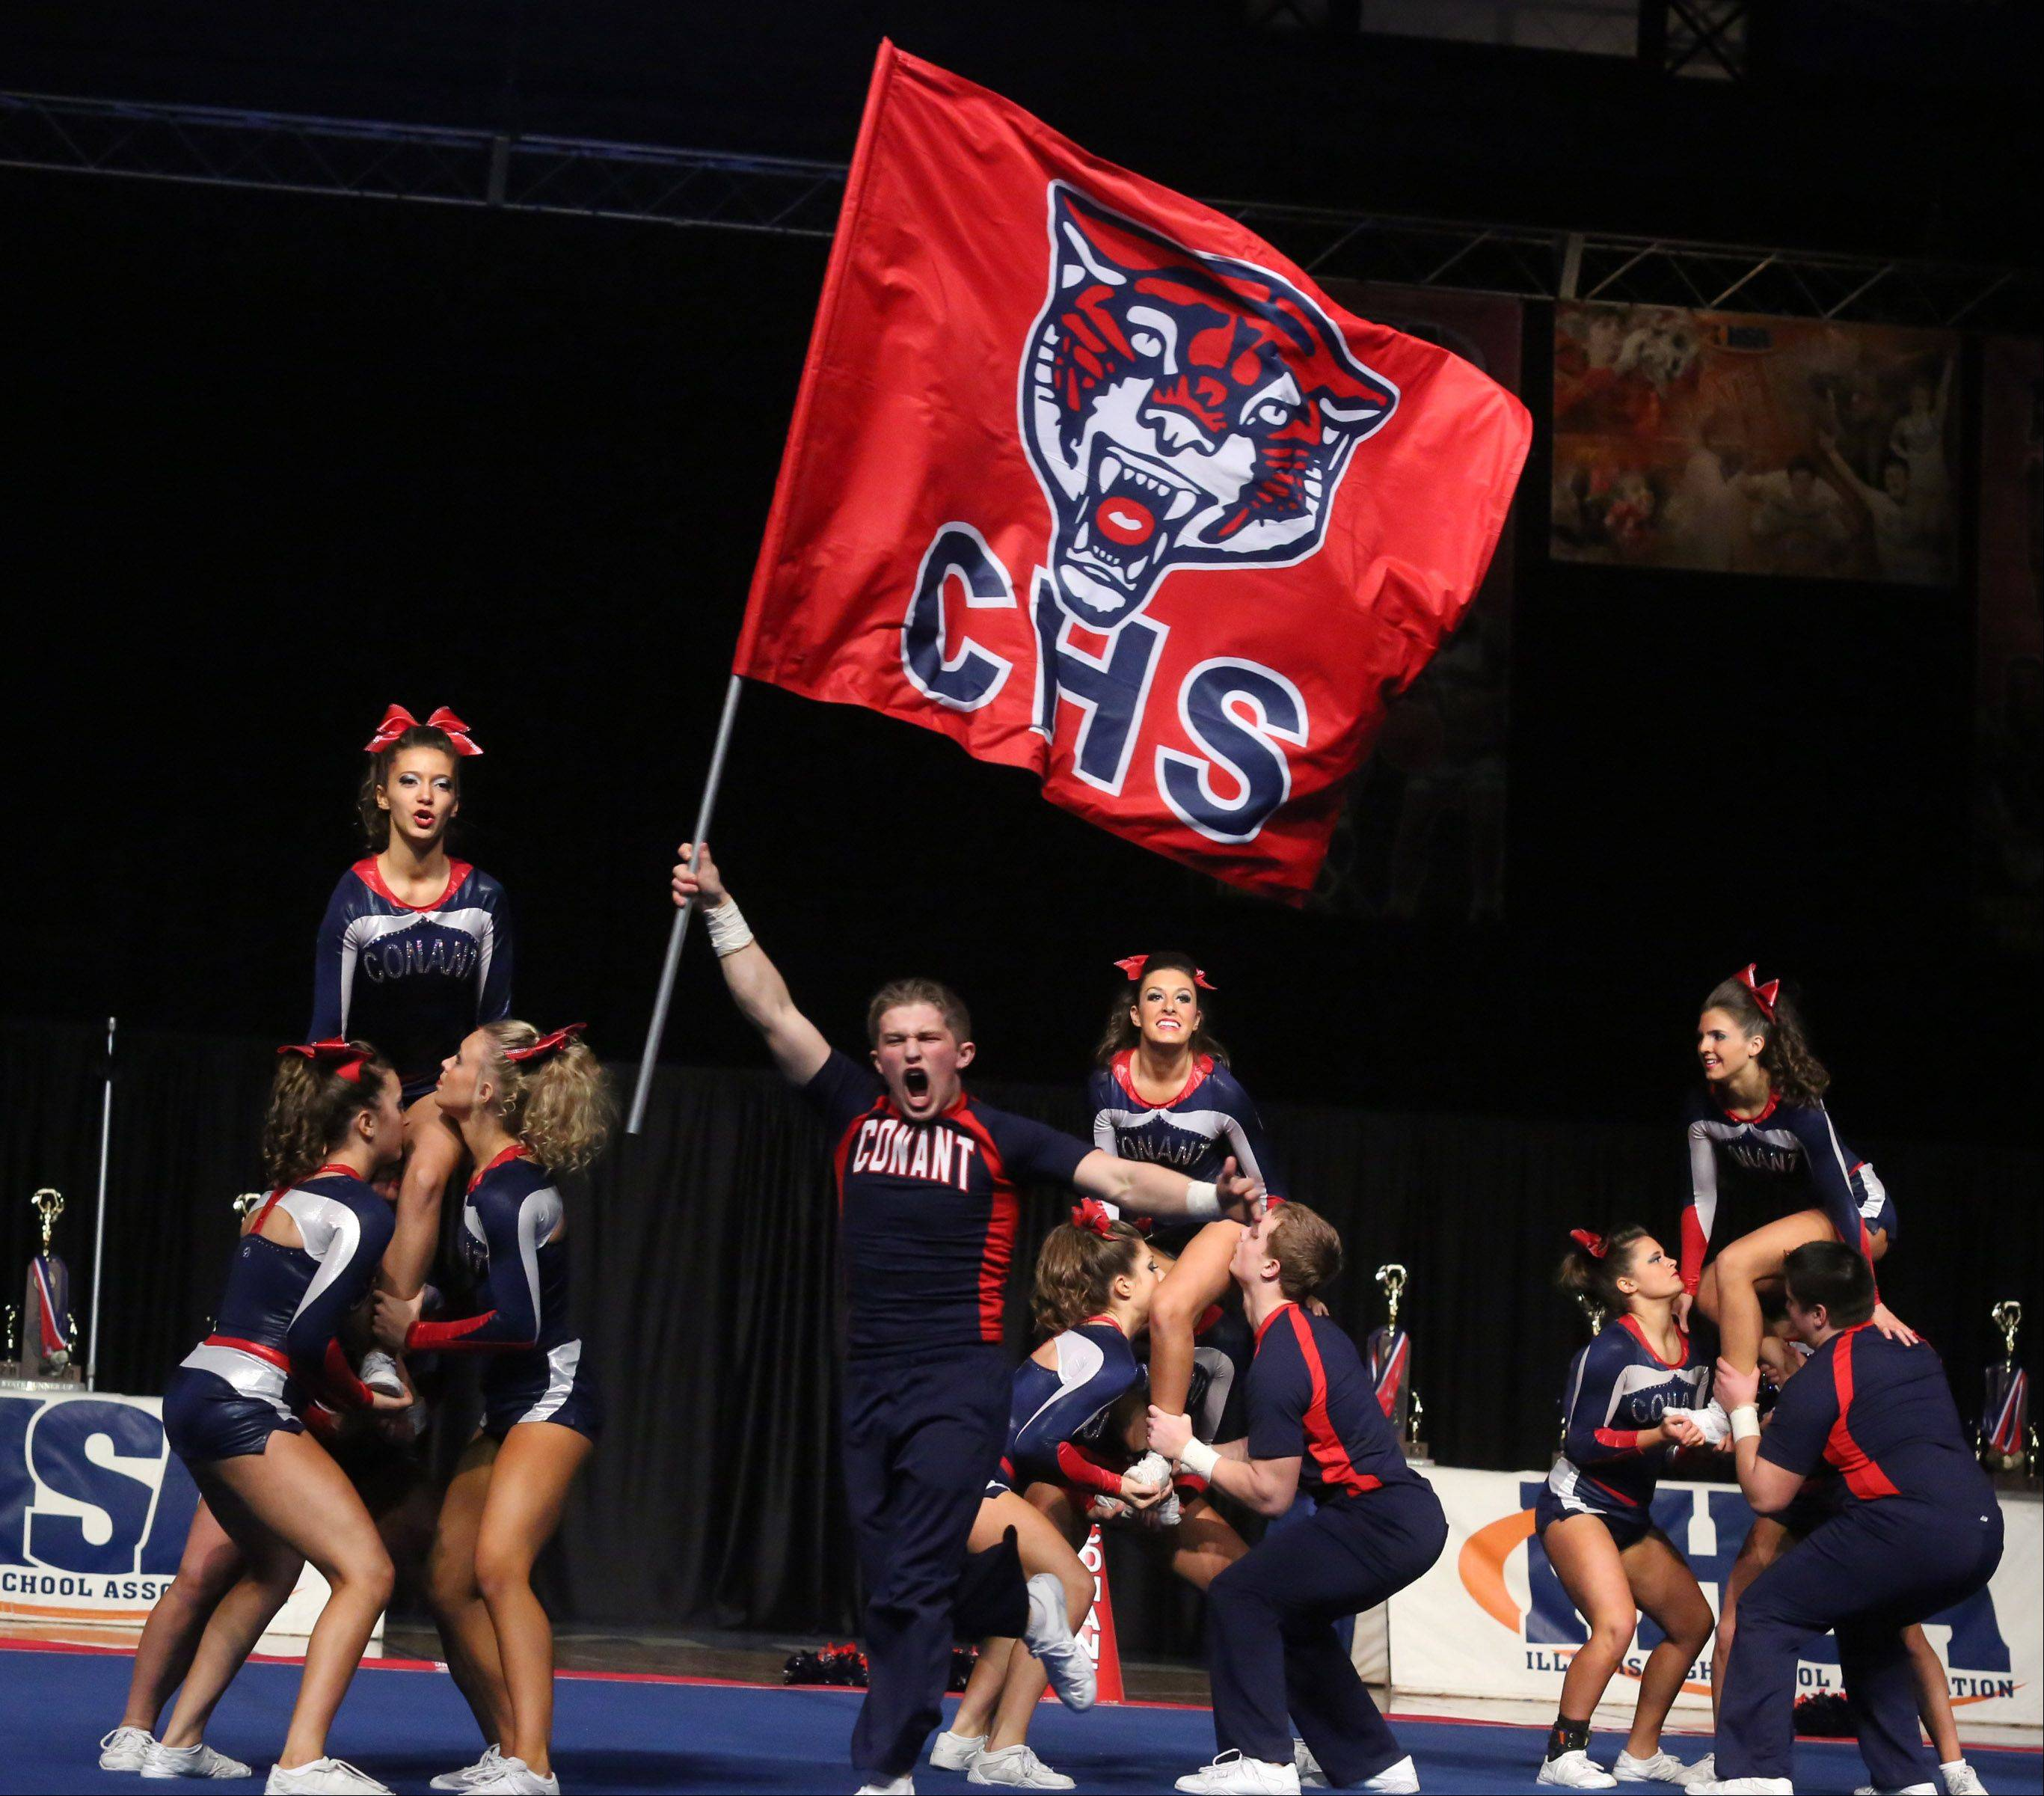 Conant High School's cheer team performs in the coed team category.